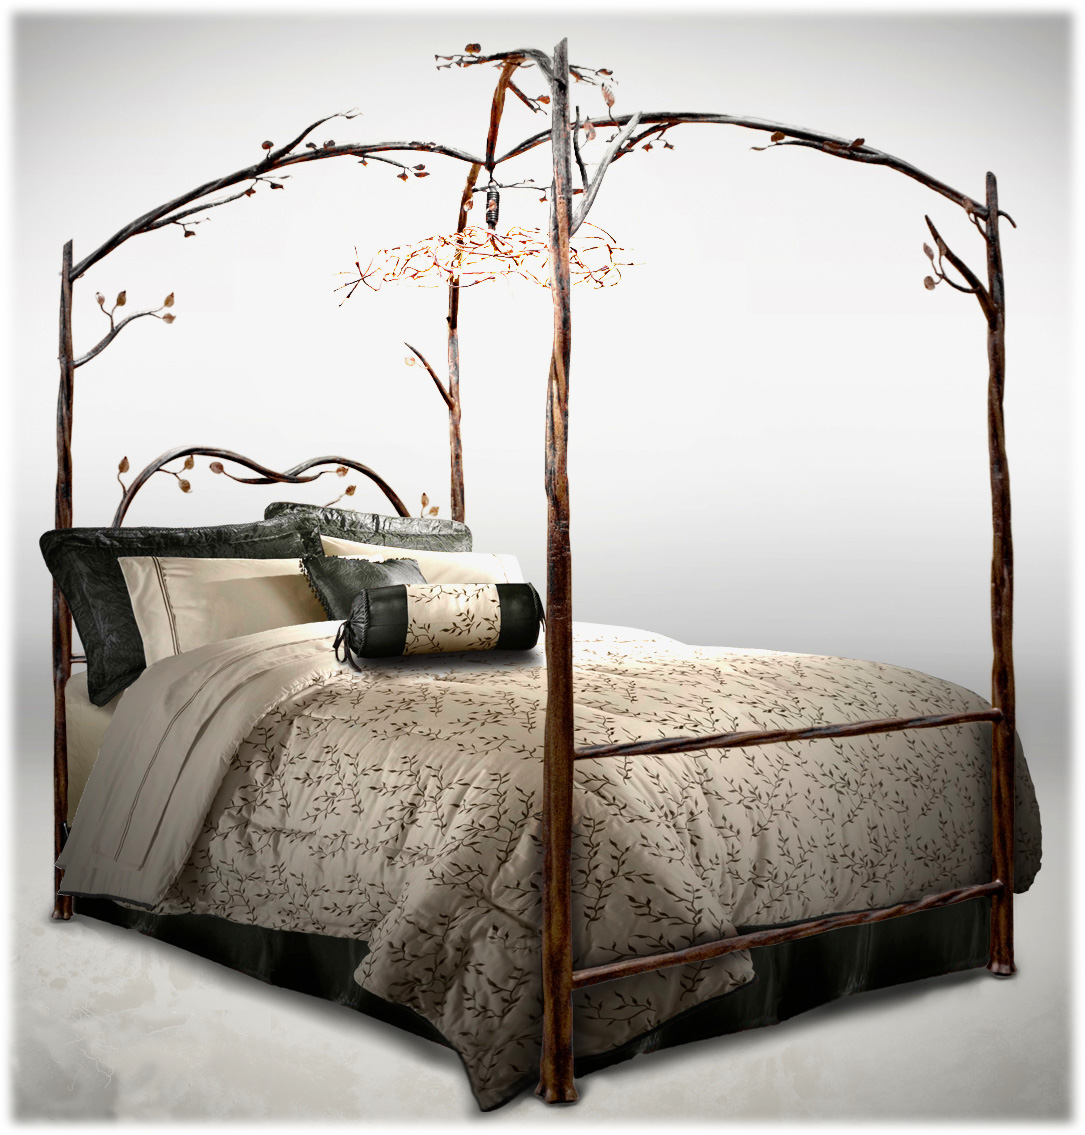 this wrought iron canopy bed is shown with an exquisite wrought iron